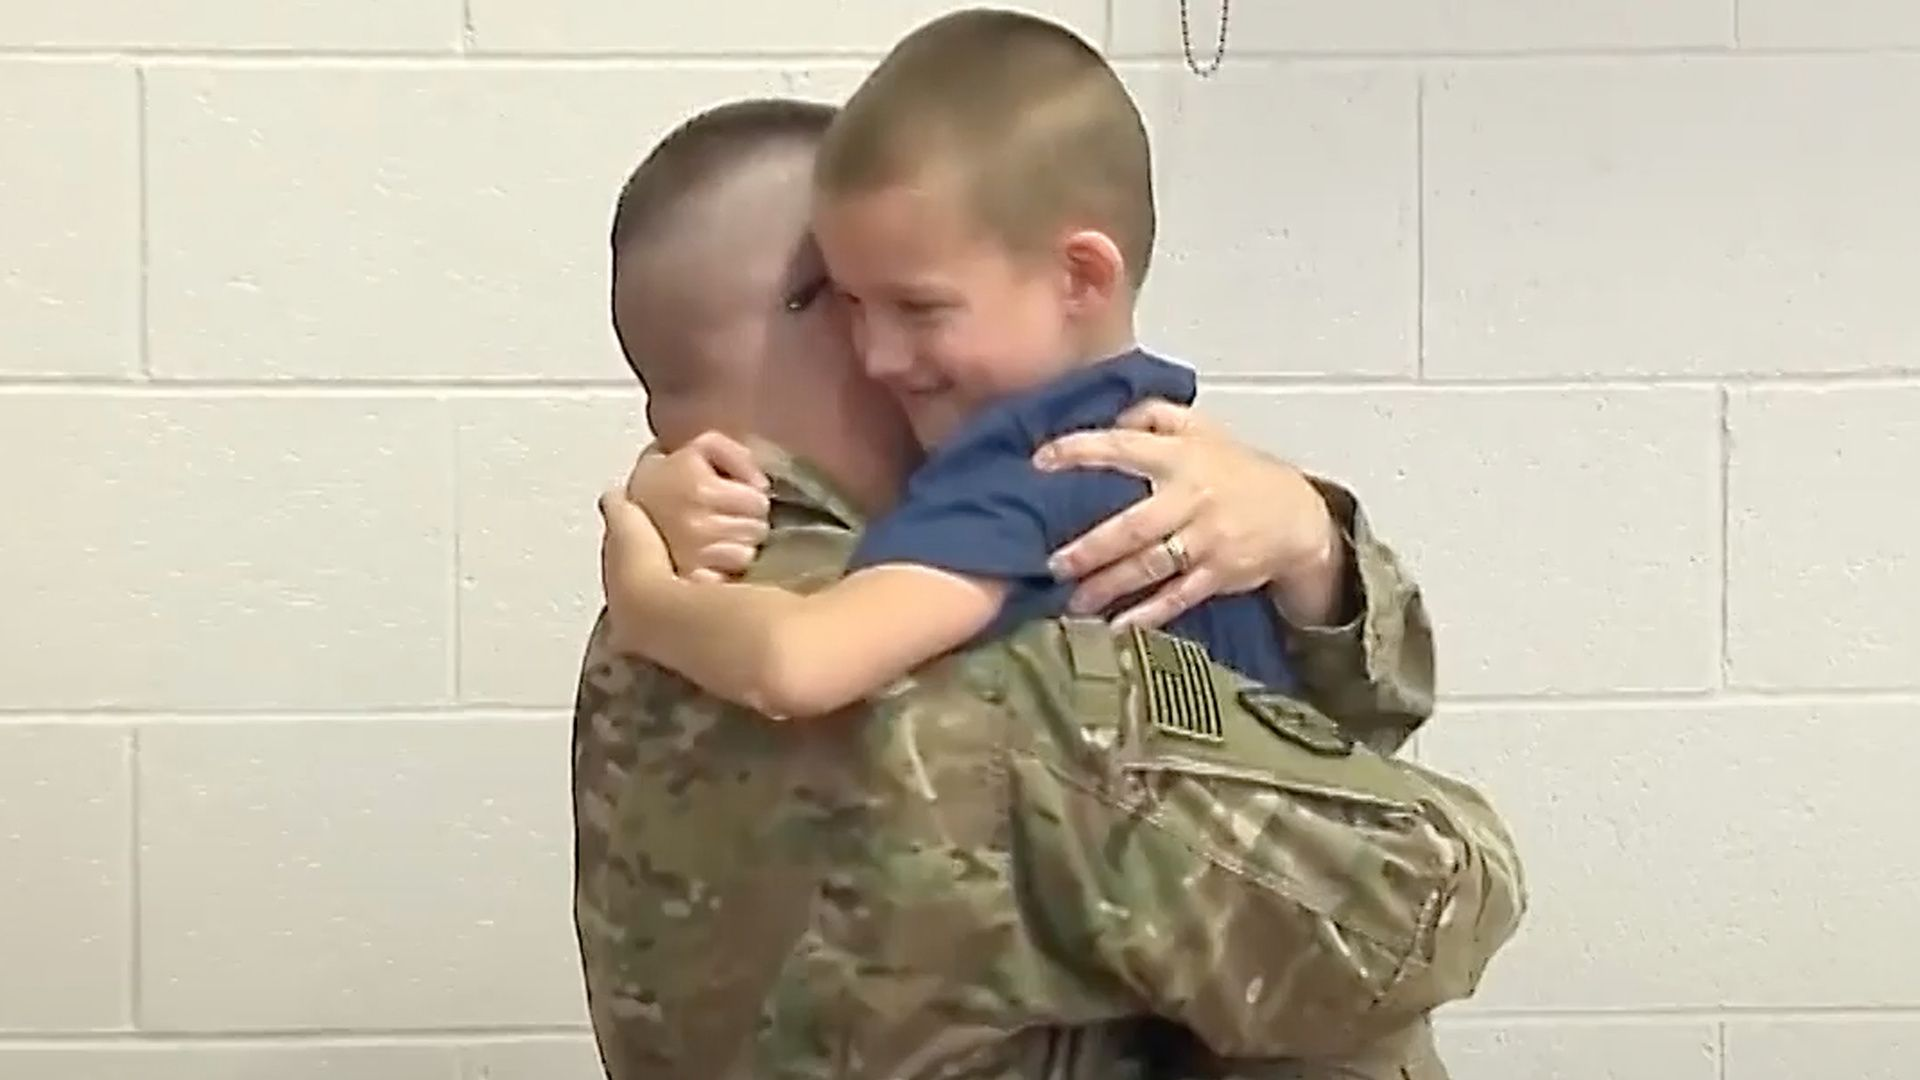 This Military Dad Gave His Son the Surprise of a Lifetime: After leading the school in the pledge of allegiance, this second grader was surprised by the arrival of his military dad.